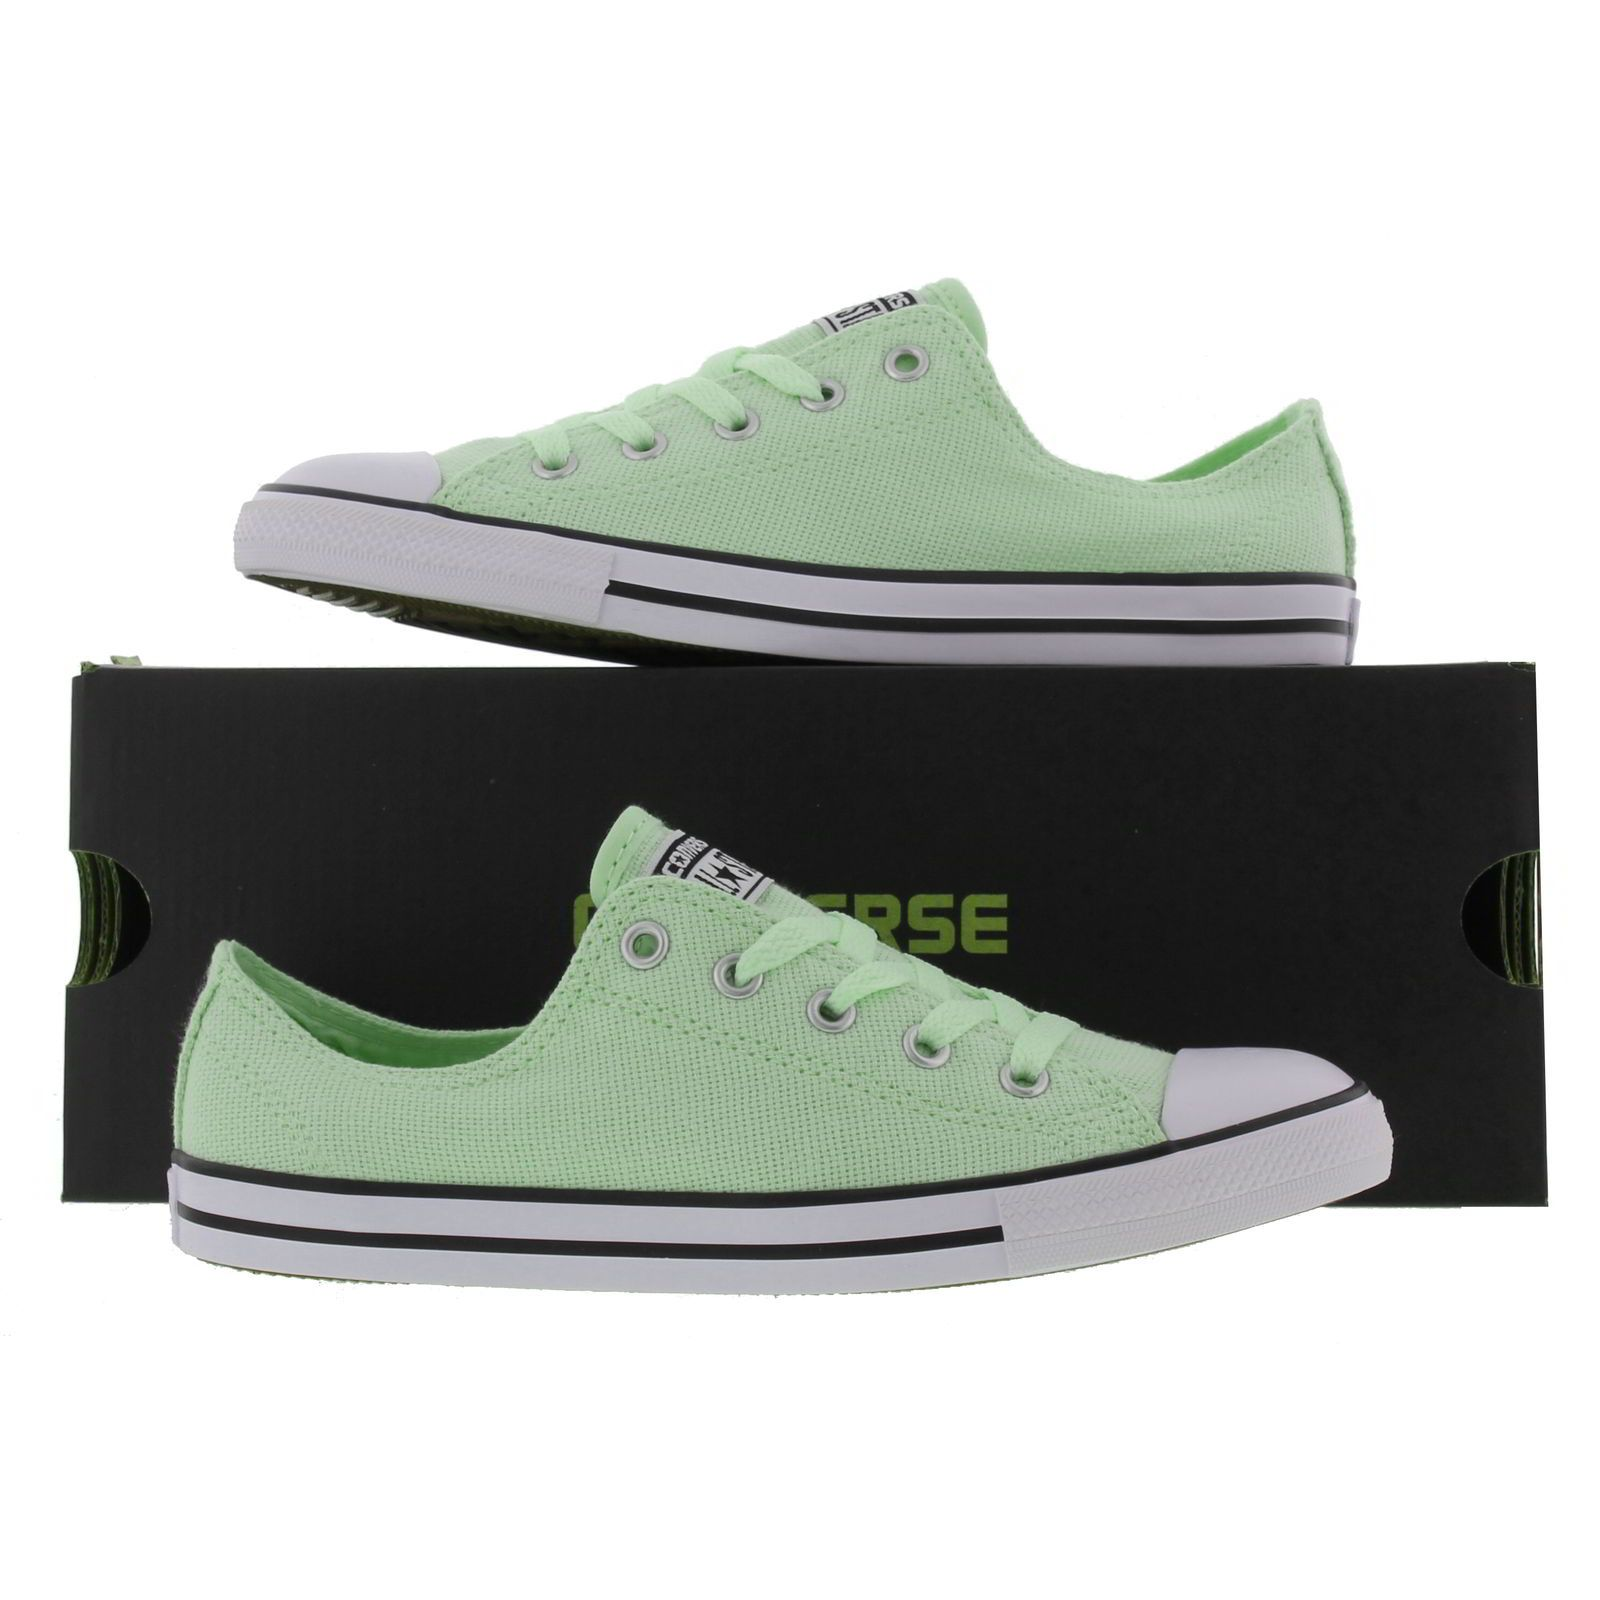 Converse Womens All Star Dainty Oxford Trainers - Pistachio Green